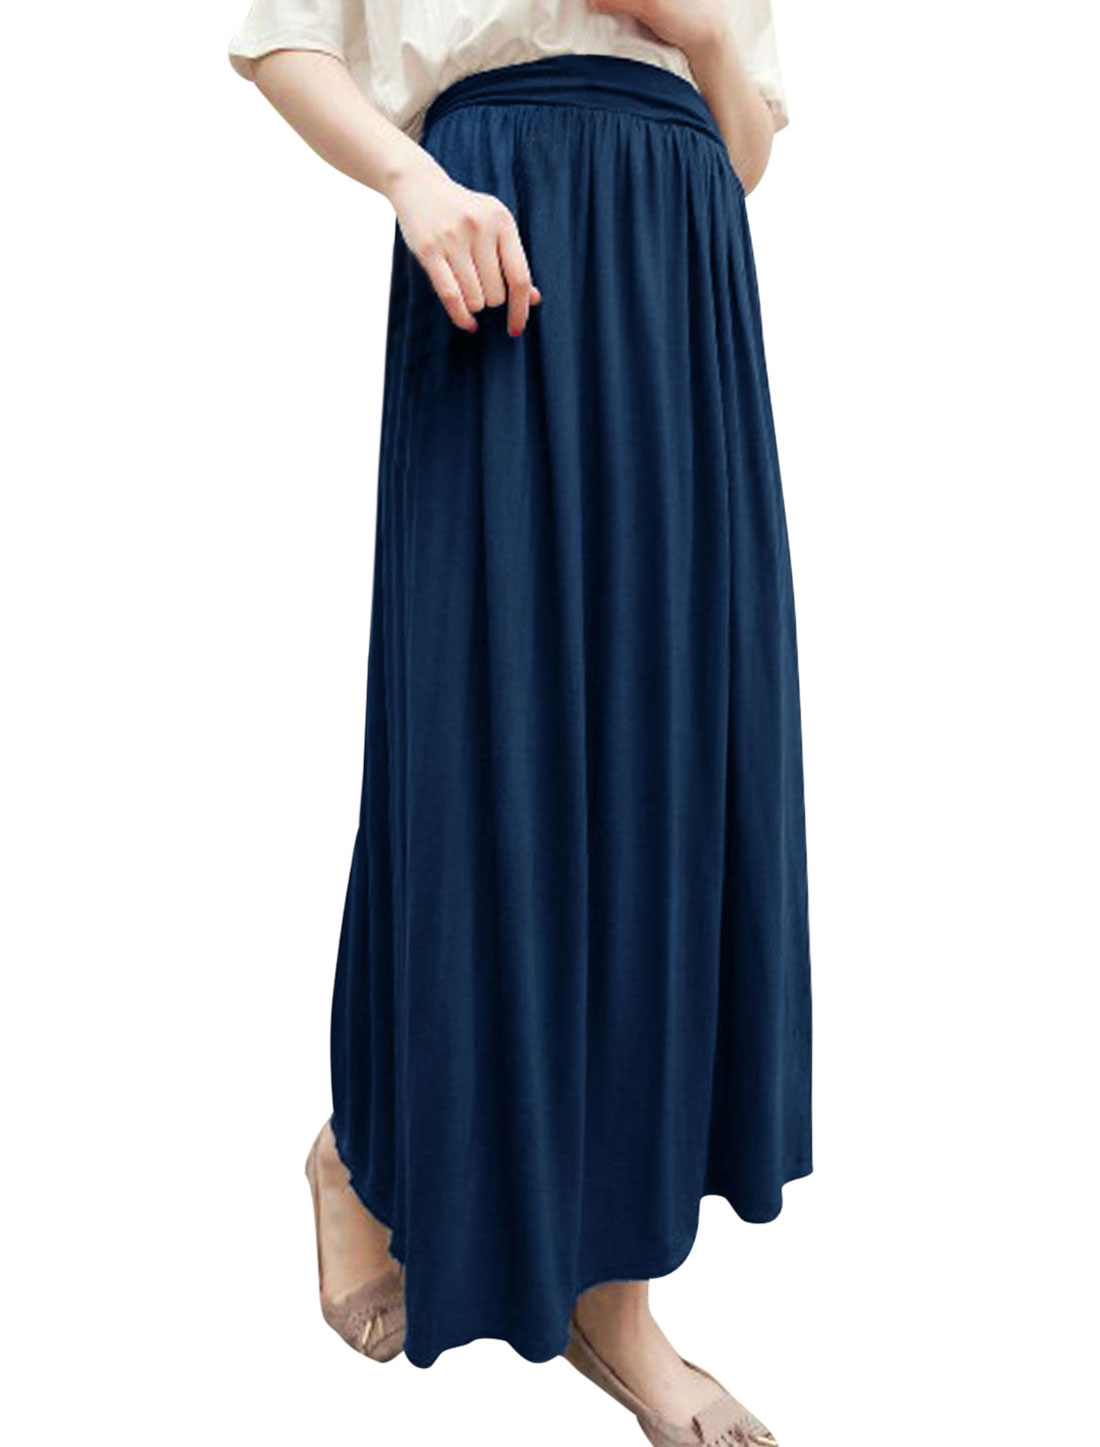 Women Chic Stretchy Waist Pleated Design Maxi Skirt Dark Blue XS